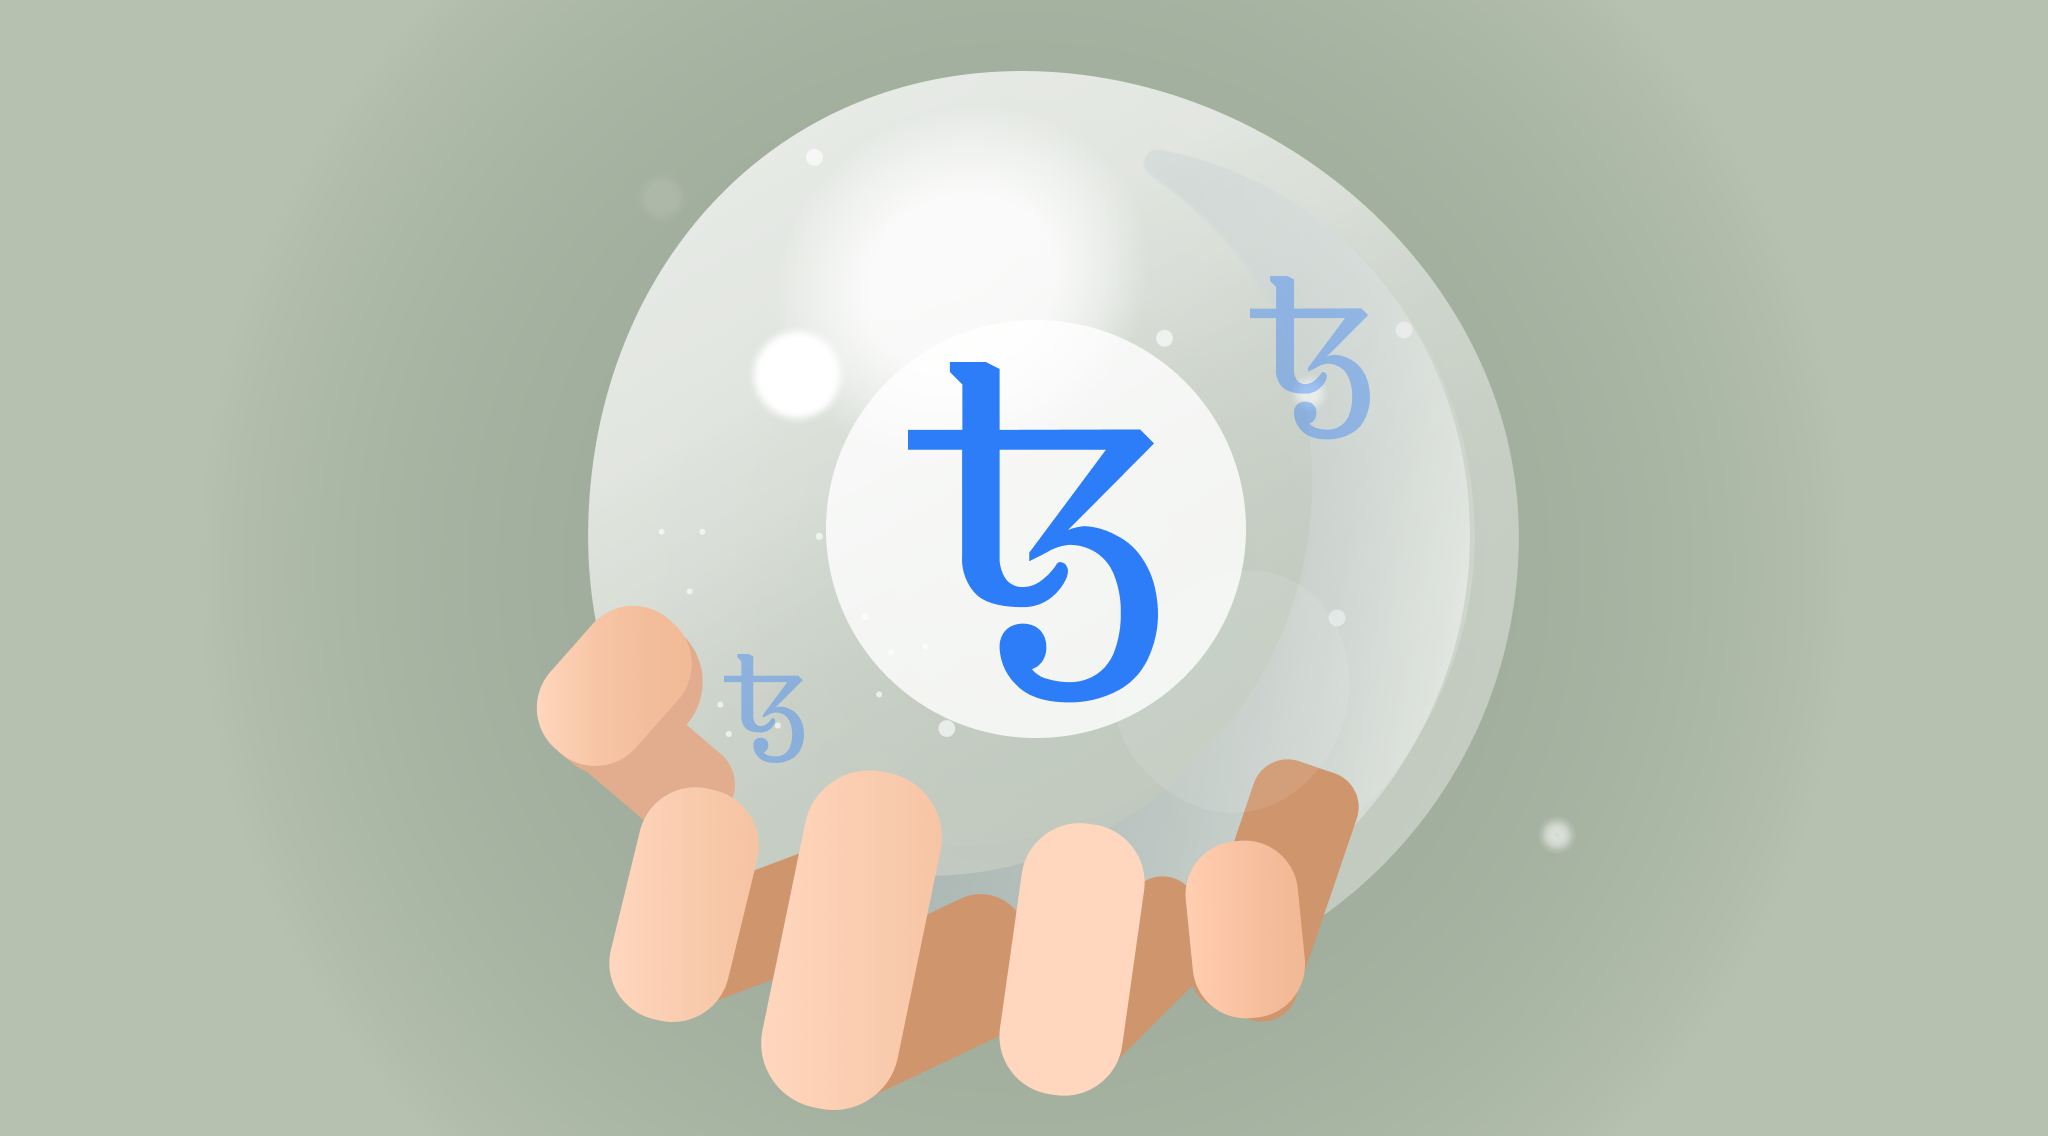 Tezos price prediction for 2020 by StealthEX